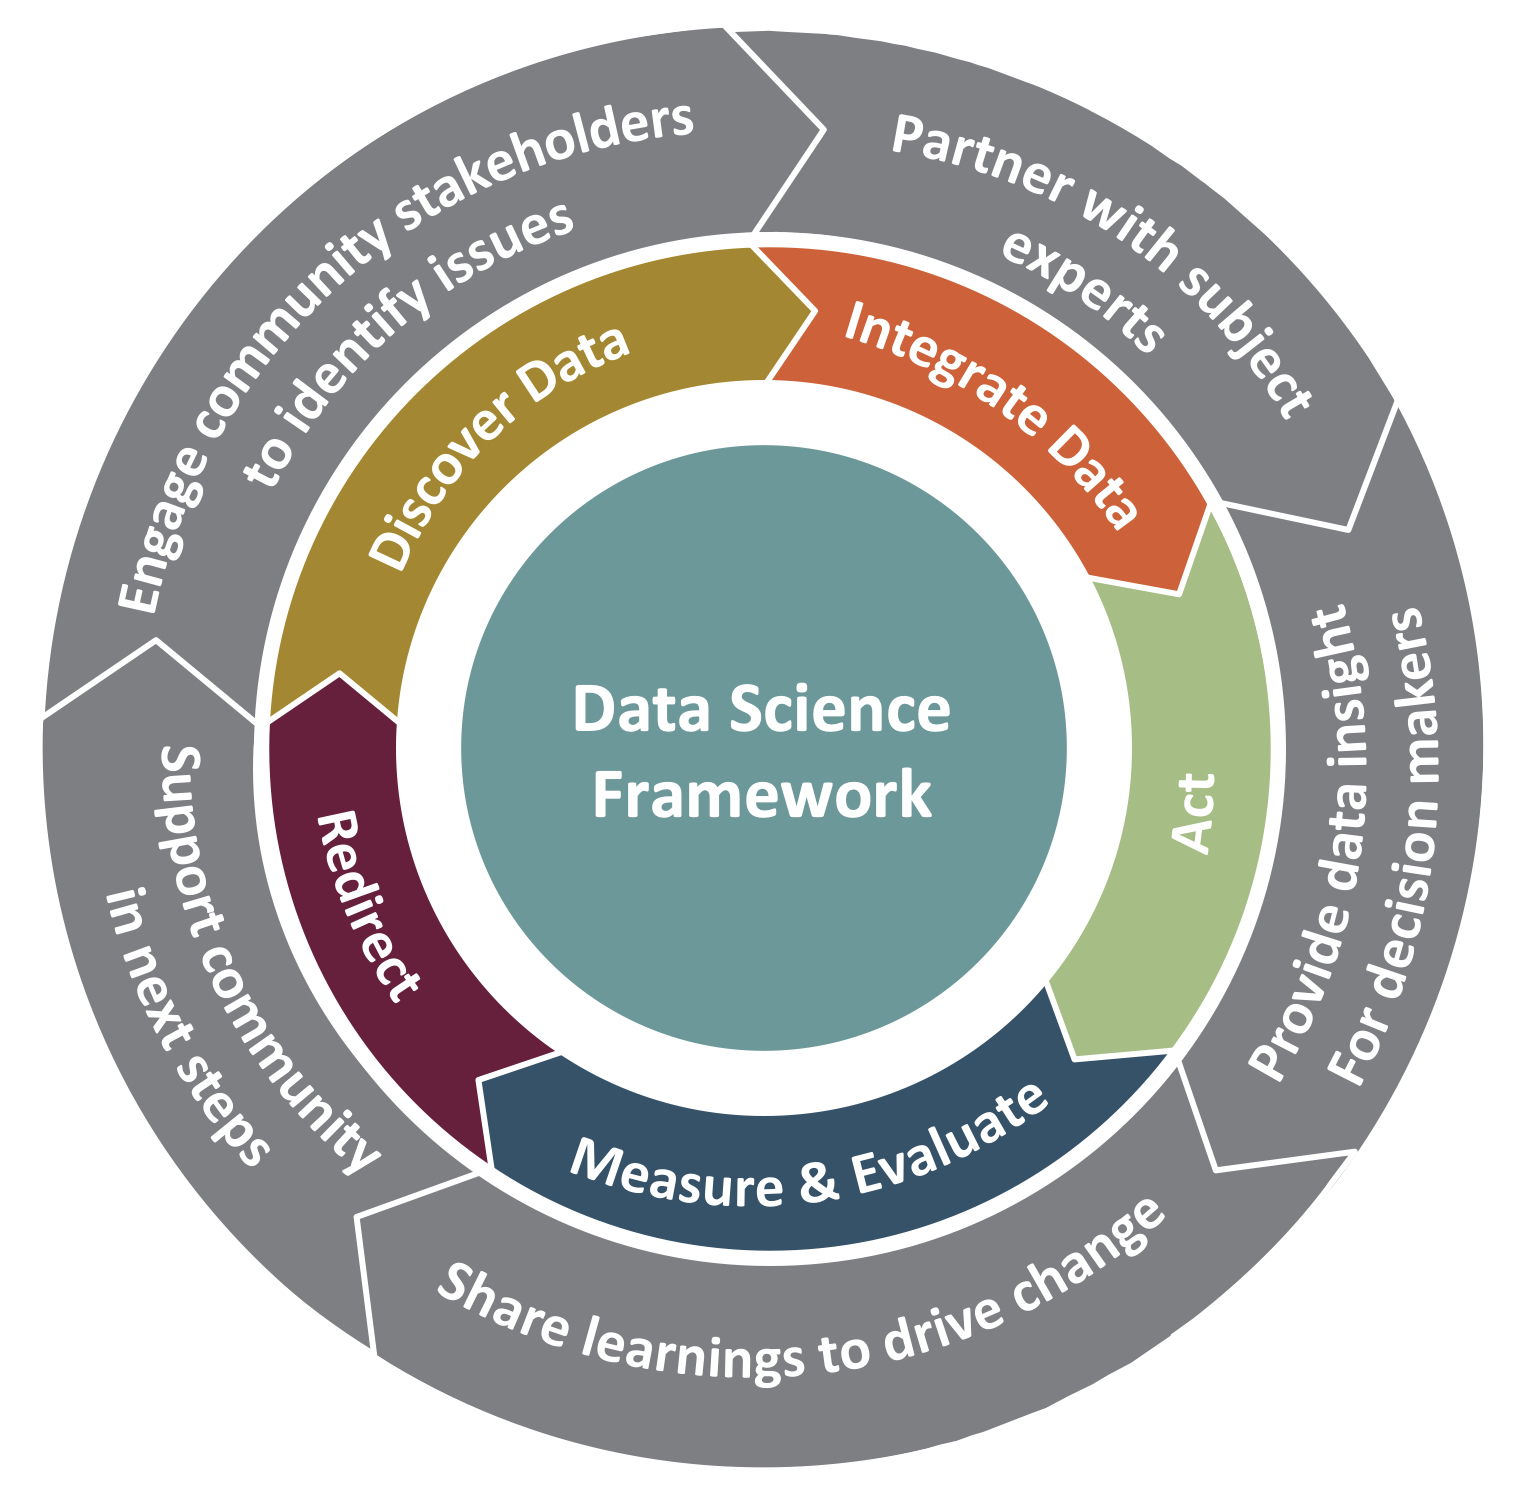 Community Learning Through Data Driven Discovery Process